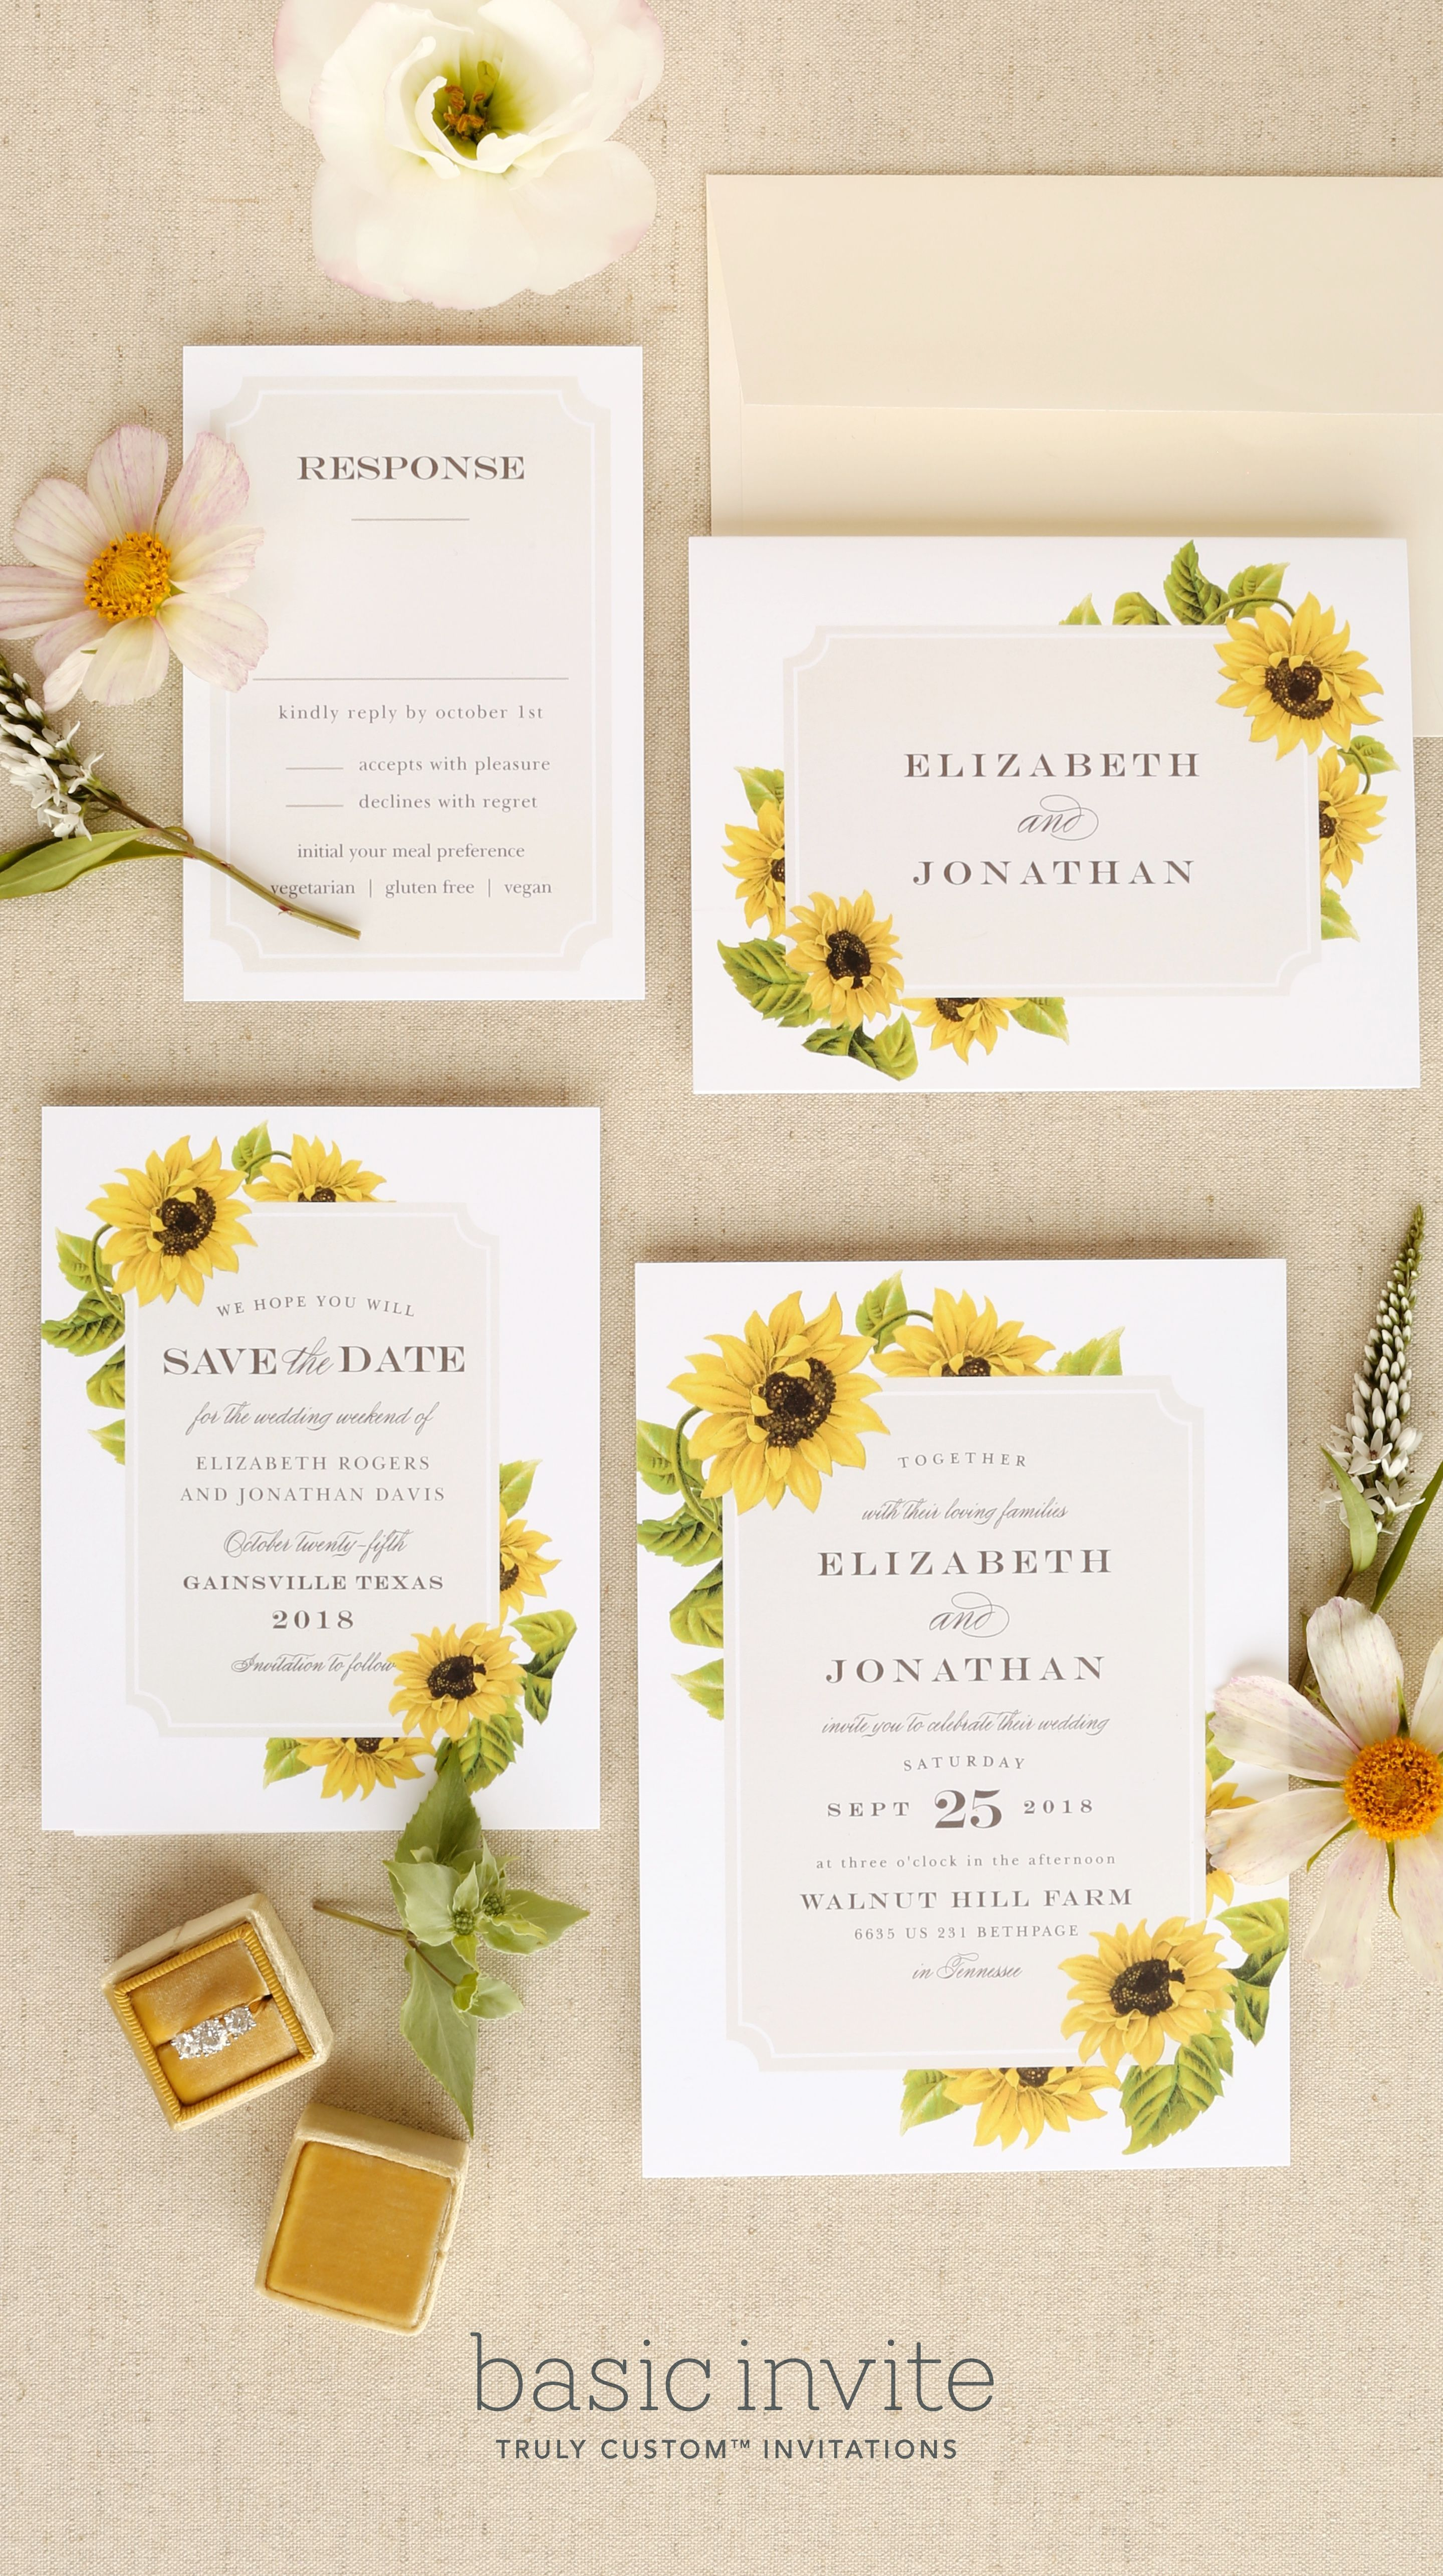 Bright And Cheerful Sunflowers Frame This Wedding Invitation Suite Pictured Sunflower Sunflower Wedding Invitations Wedding Invitations Rustic Wedding Frames